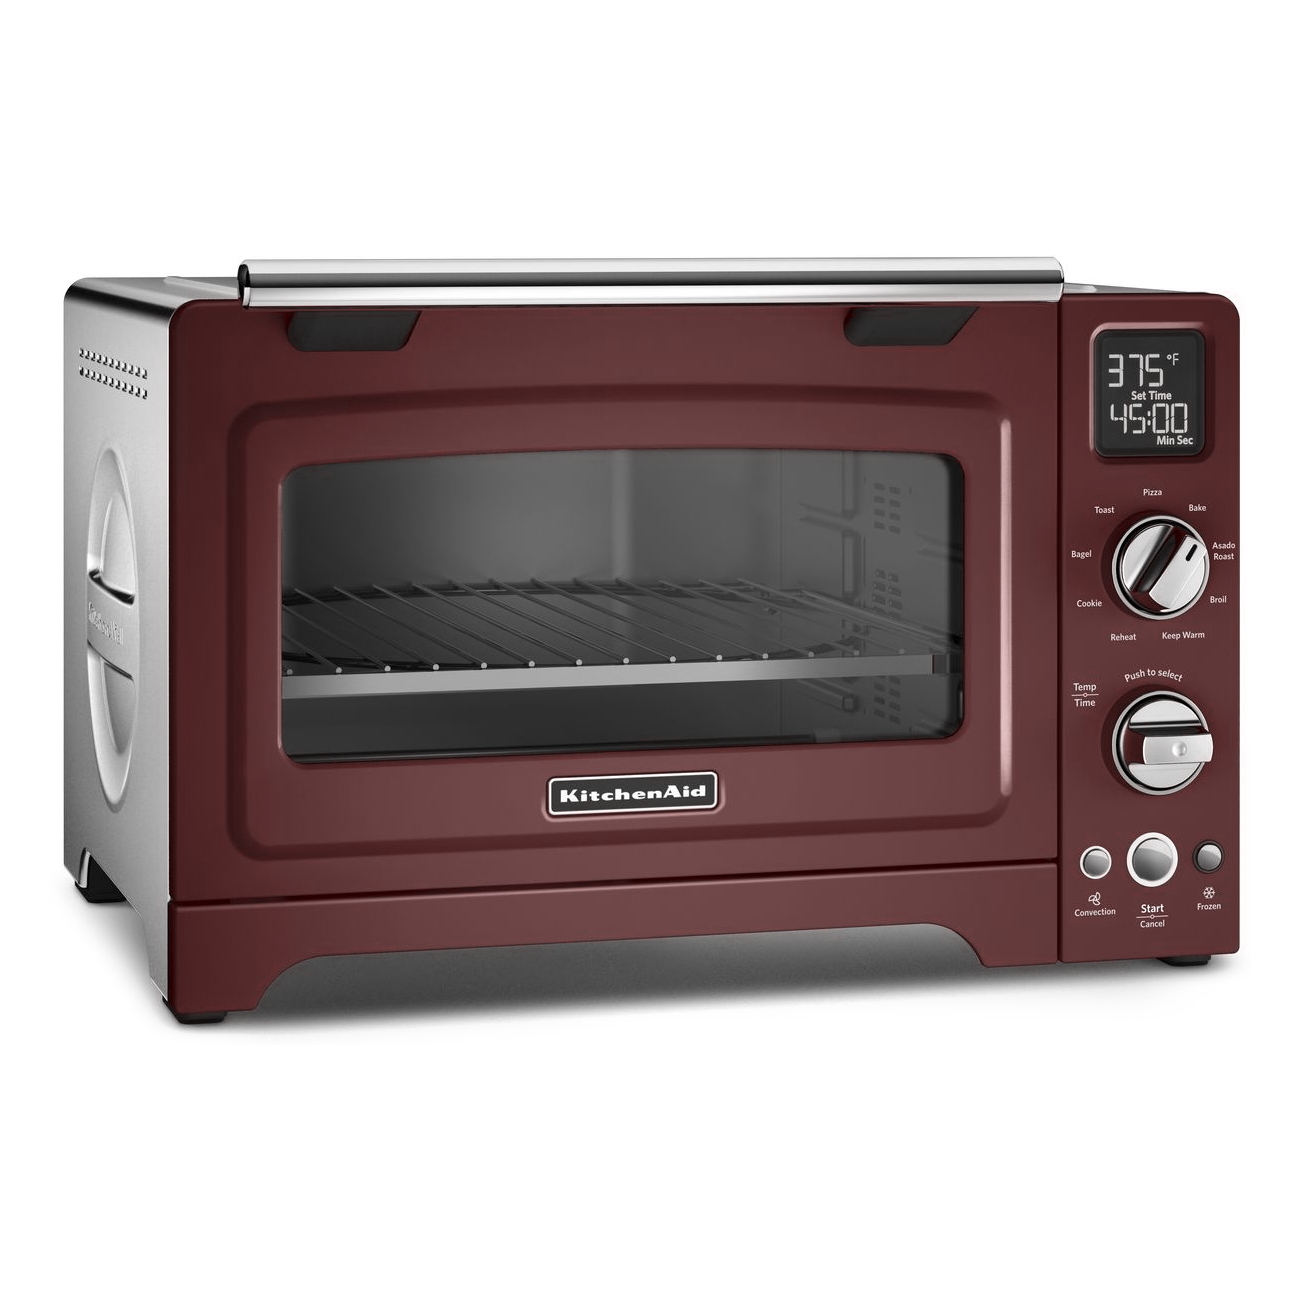 KitchenAid Gloss Cinnamon Digital Convection Oven